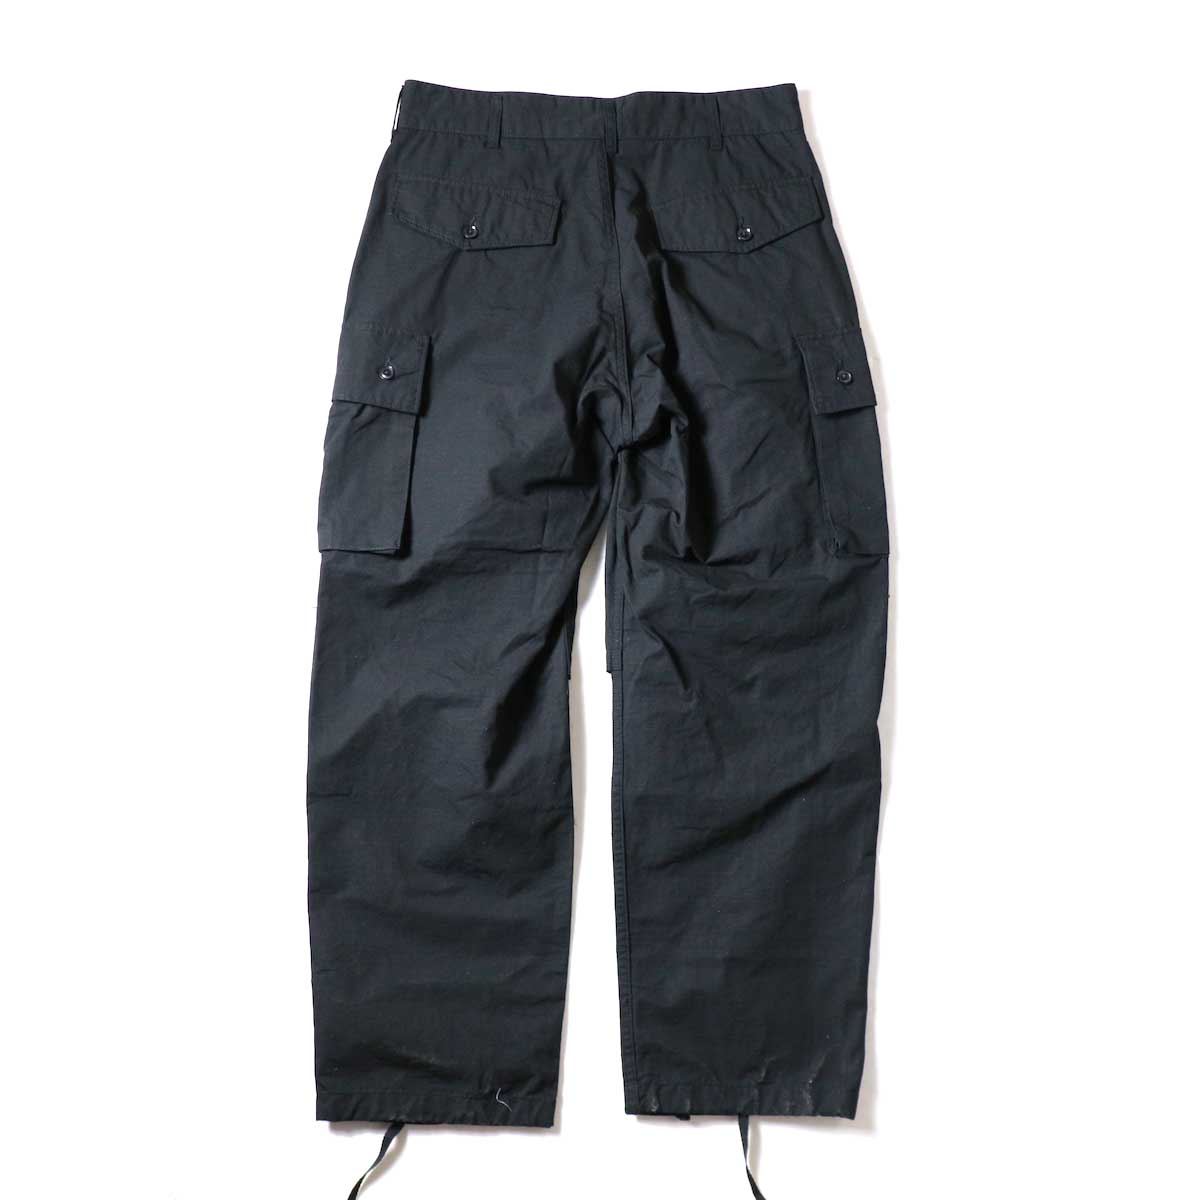 ENGINEERED GARMENTS / FA Pant - Cotton Ripstop (Black)背面